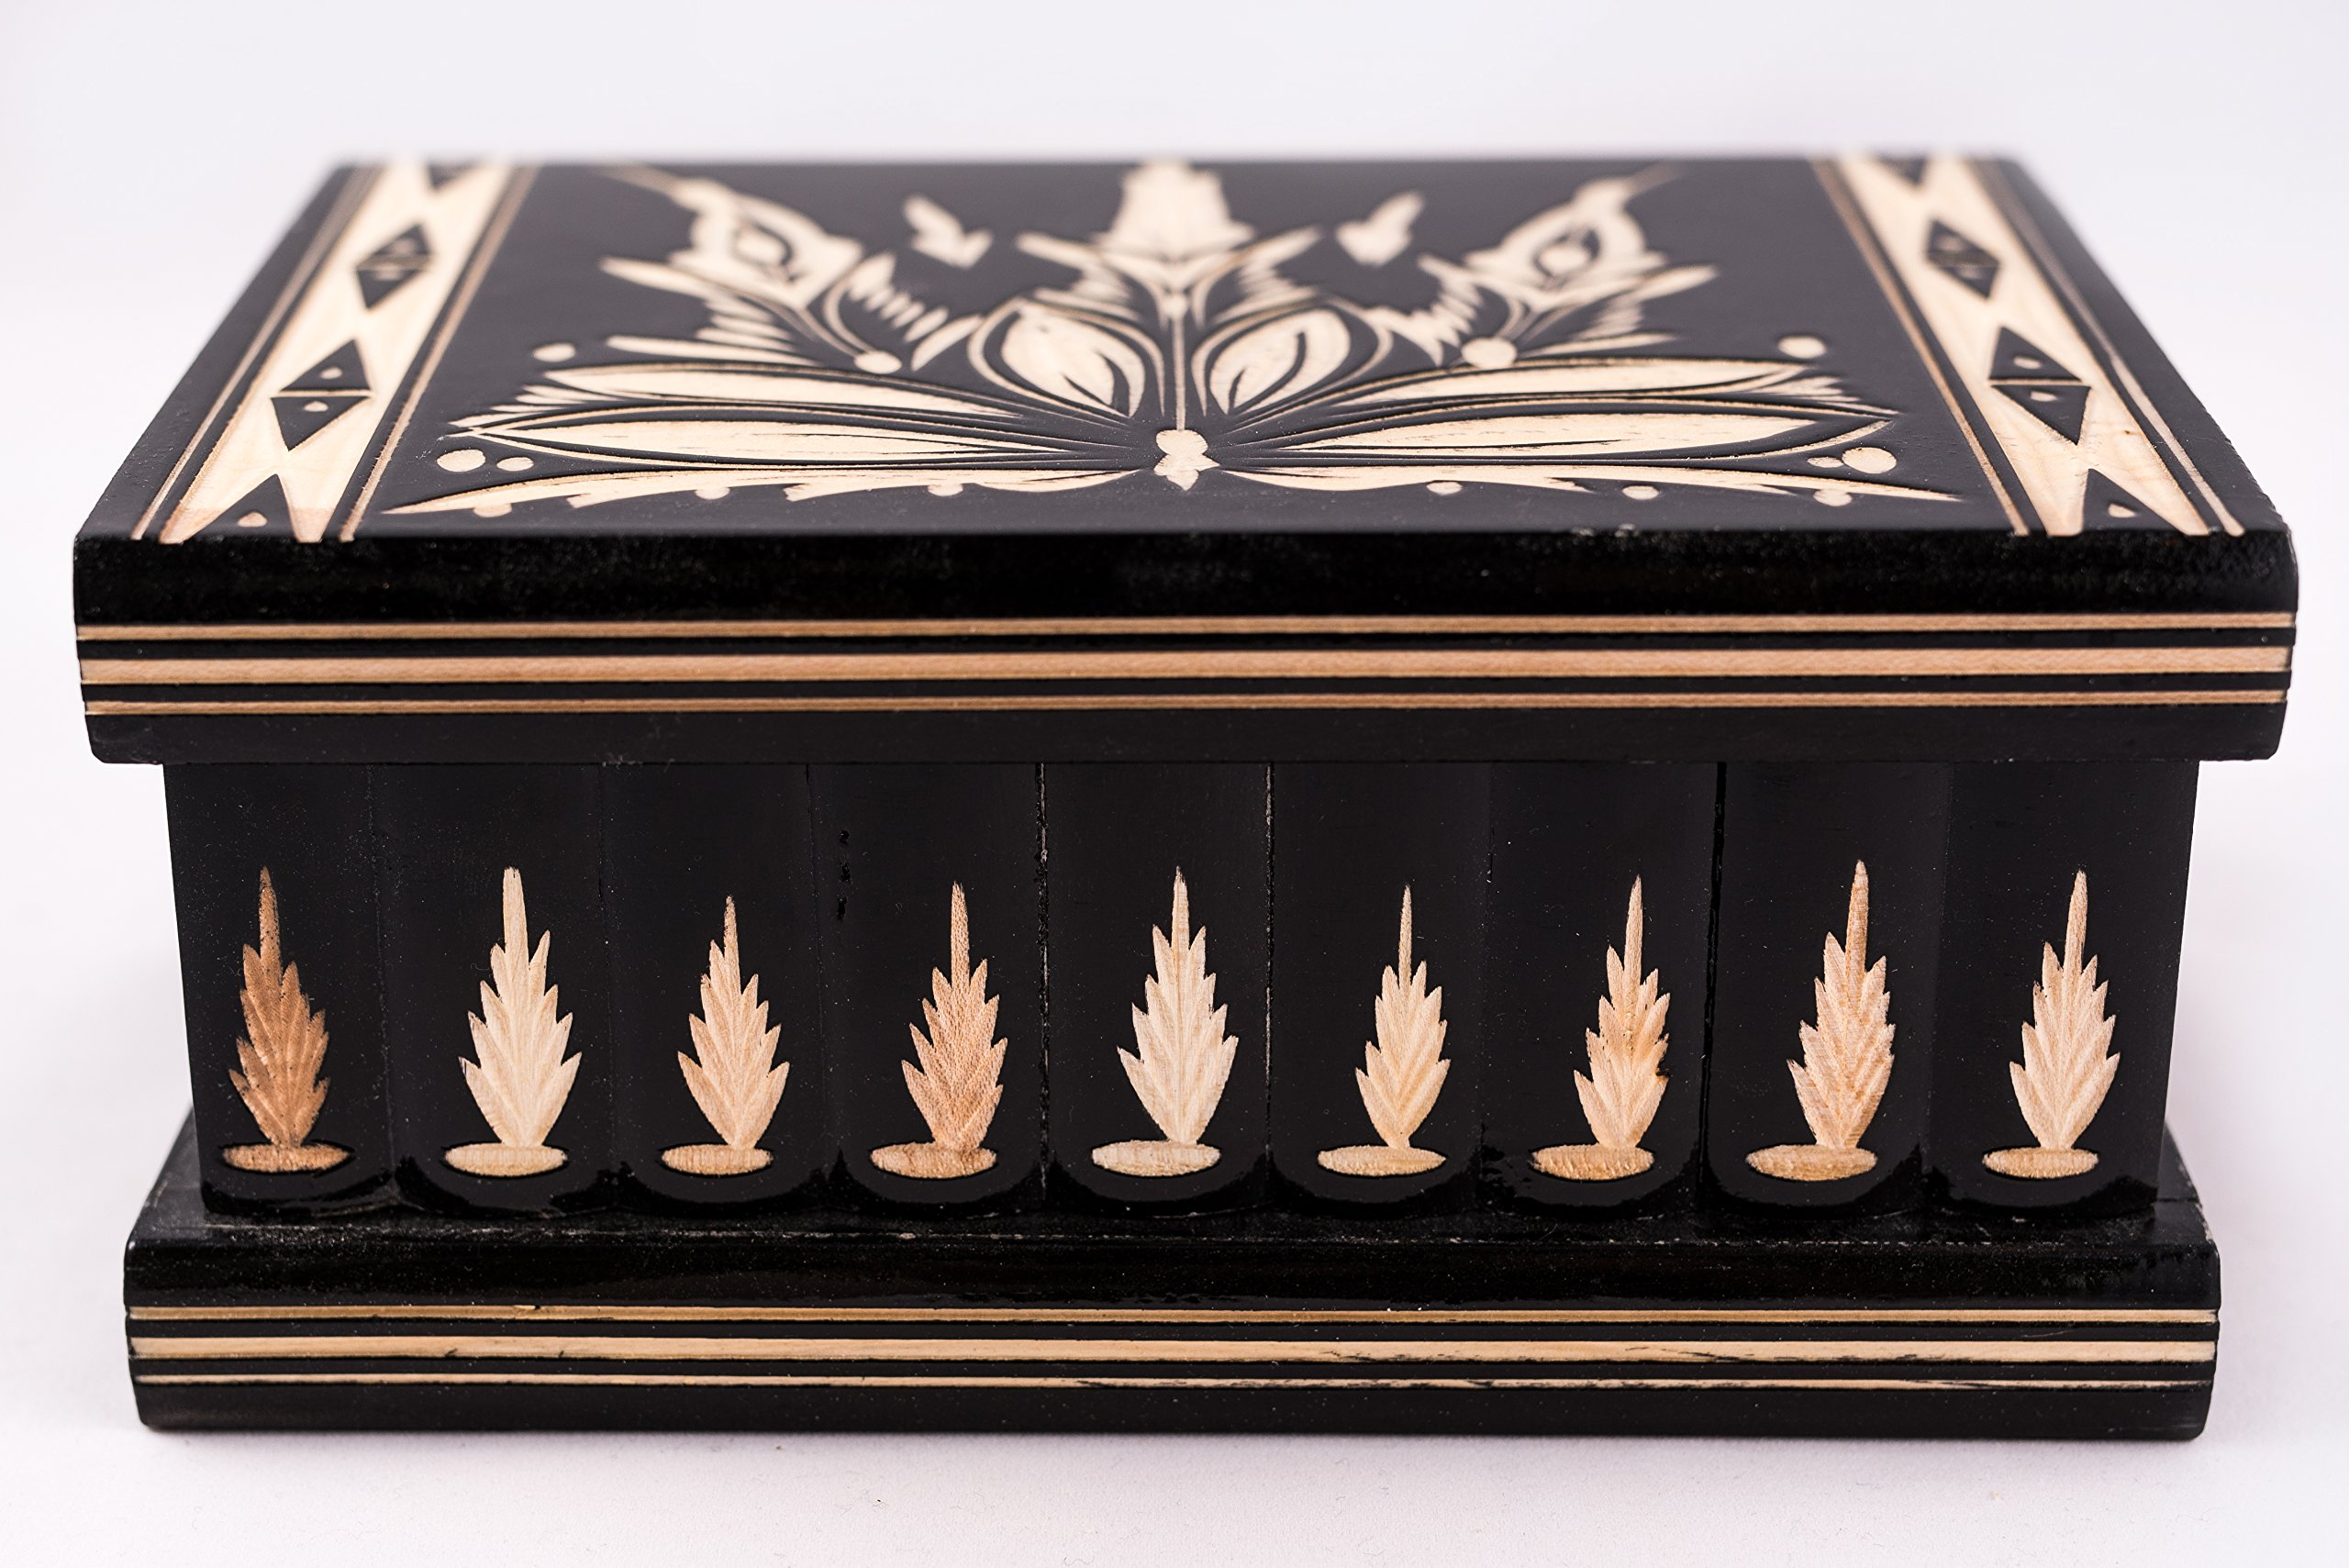 Handmade Wooden Puzzle Boxes with Hidden Compartment (Large) - Top Quality Elegant Box with Easy Open/Closing Mechanism - Decorative Storage Box for Jewelry, Toys, Puzzles - Great Gift Black